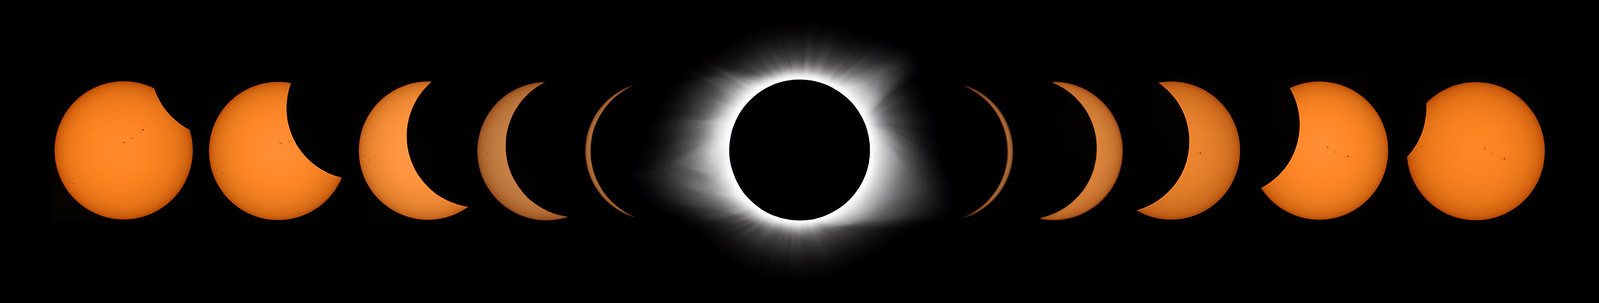 How to Create a Solar Eclipse Phase Composite Image